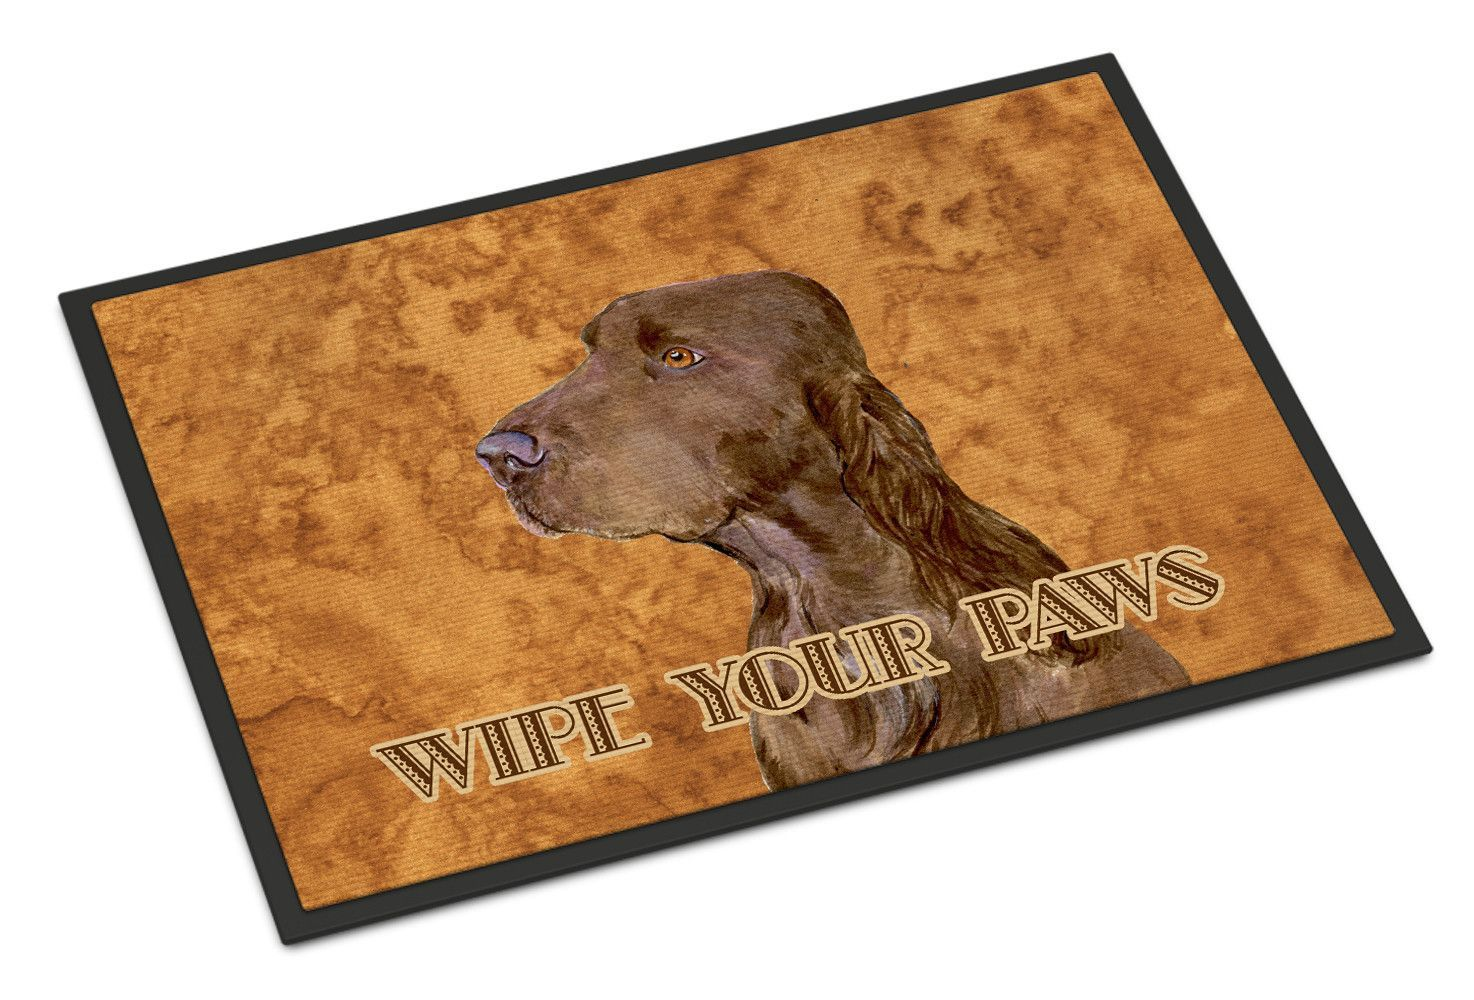 Field Spaniel Wipe your Paws Indoor or Outdoor Mat 24x36 SS4879JMAT